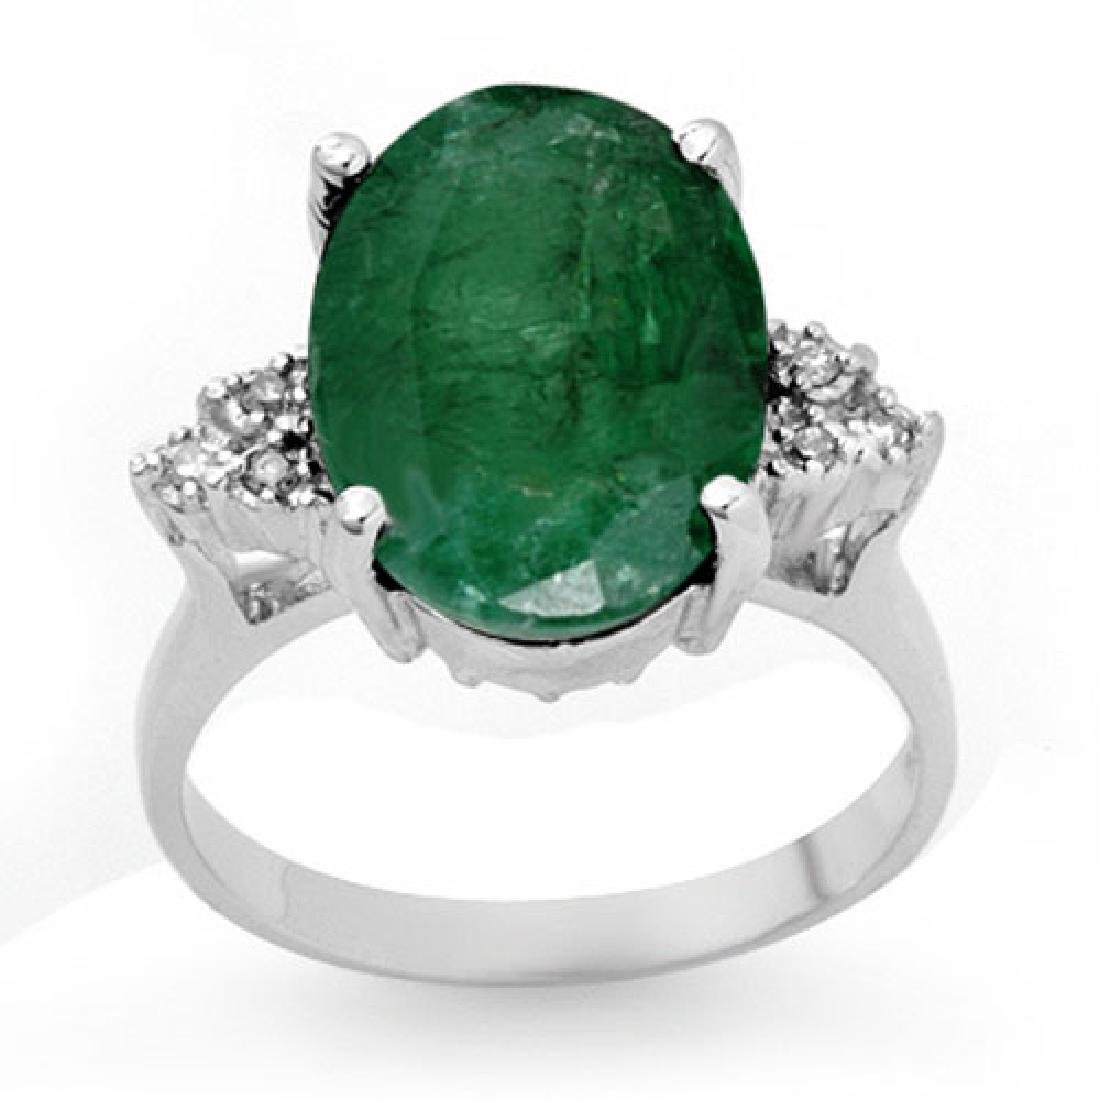 6.35 CTW Emerald & Diamond Ring 10K White Gold